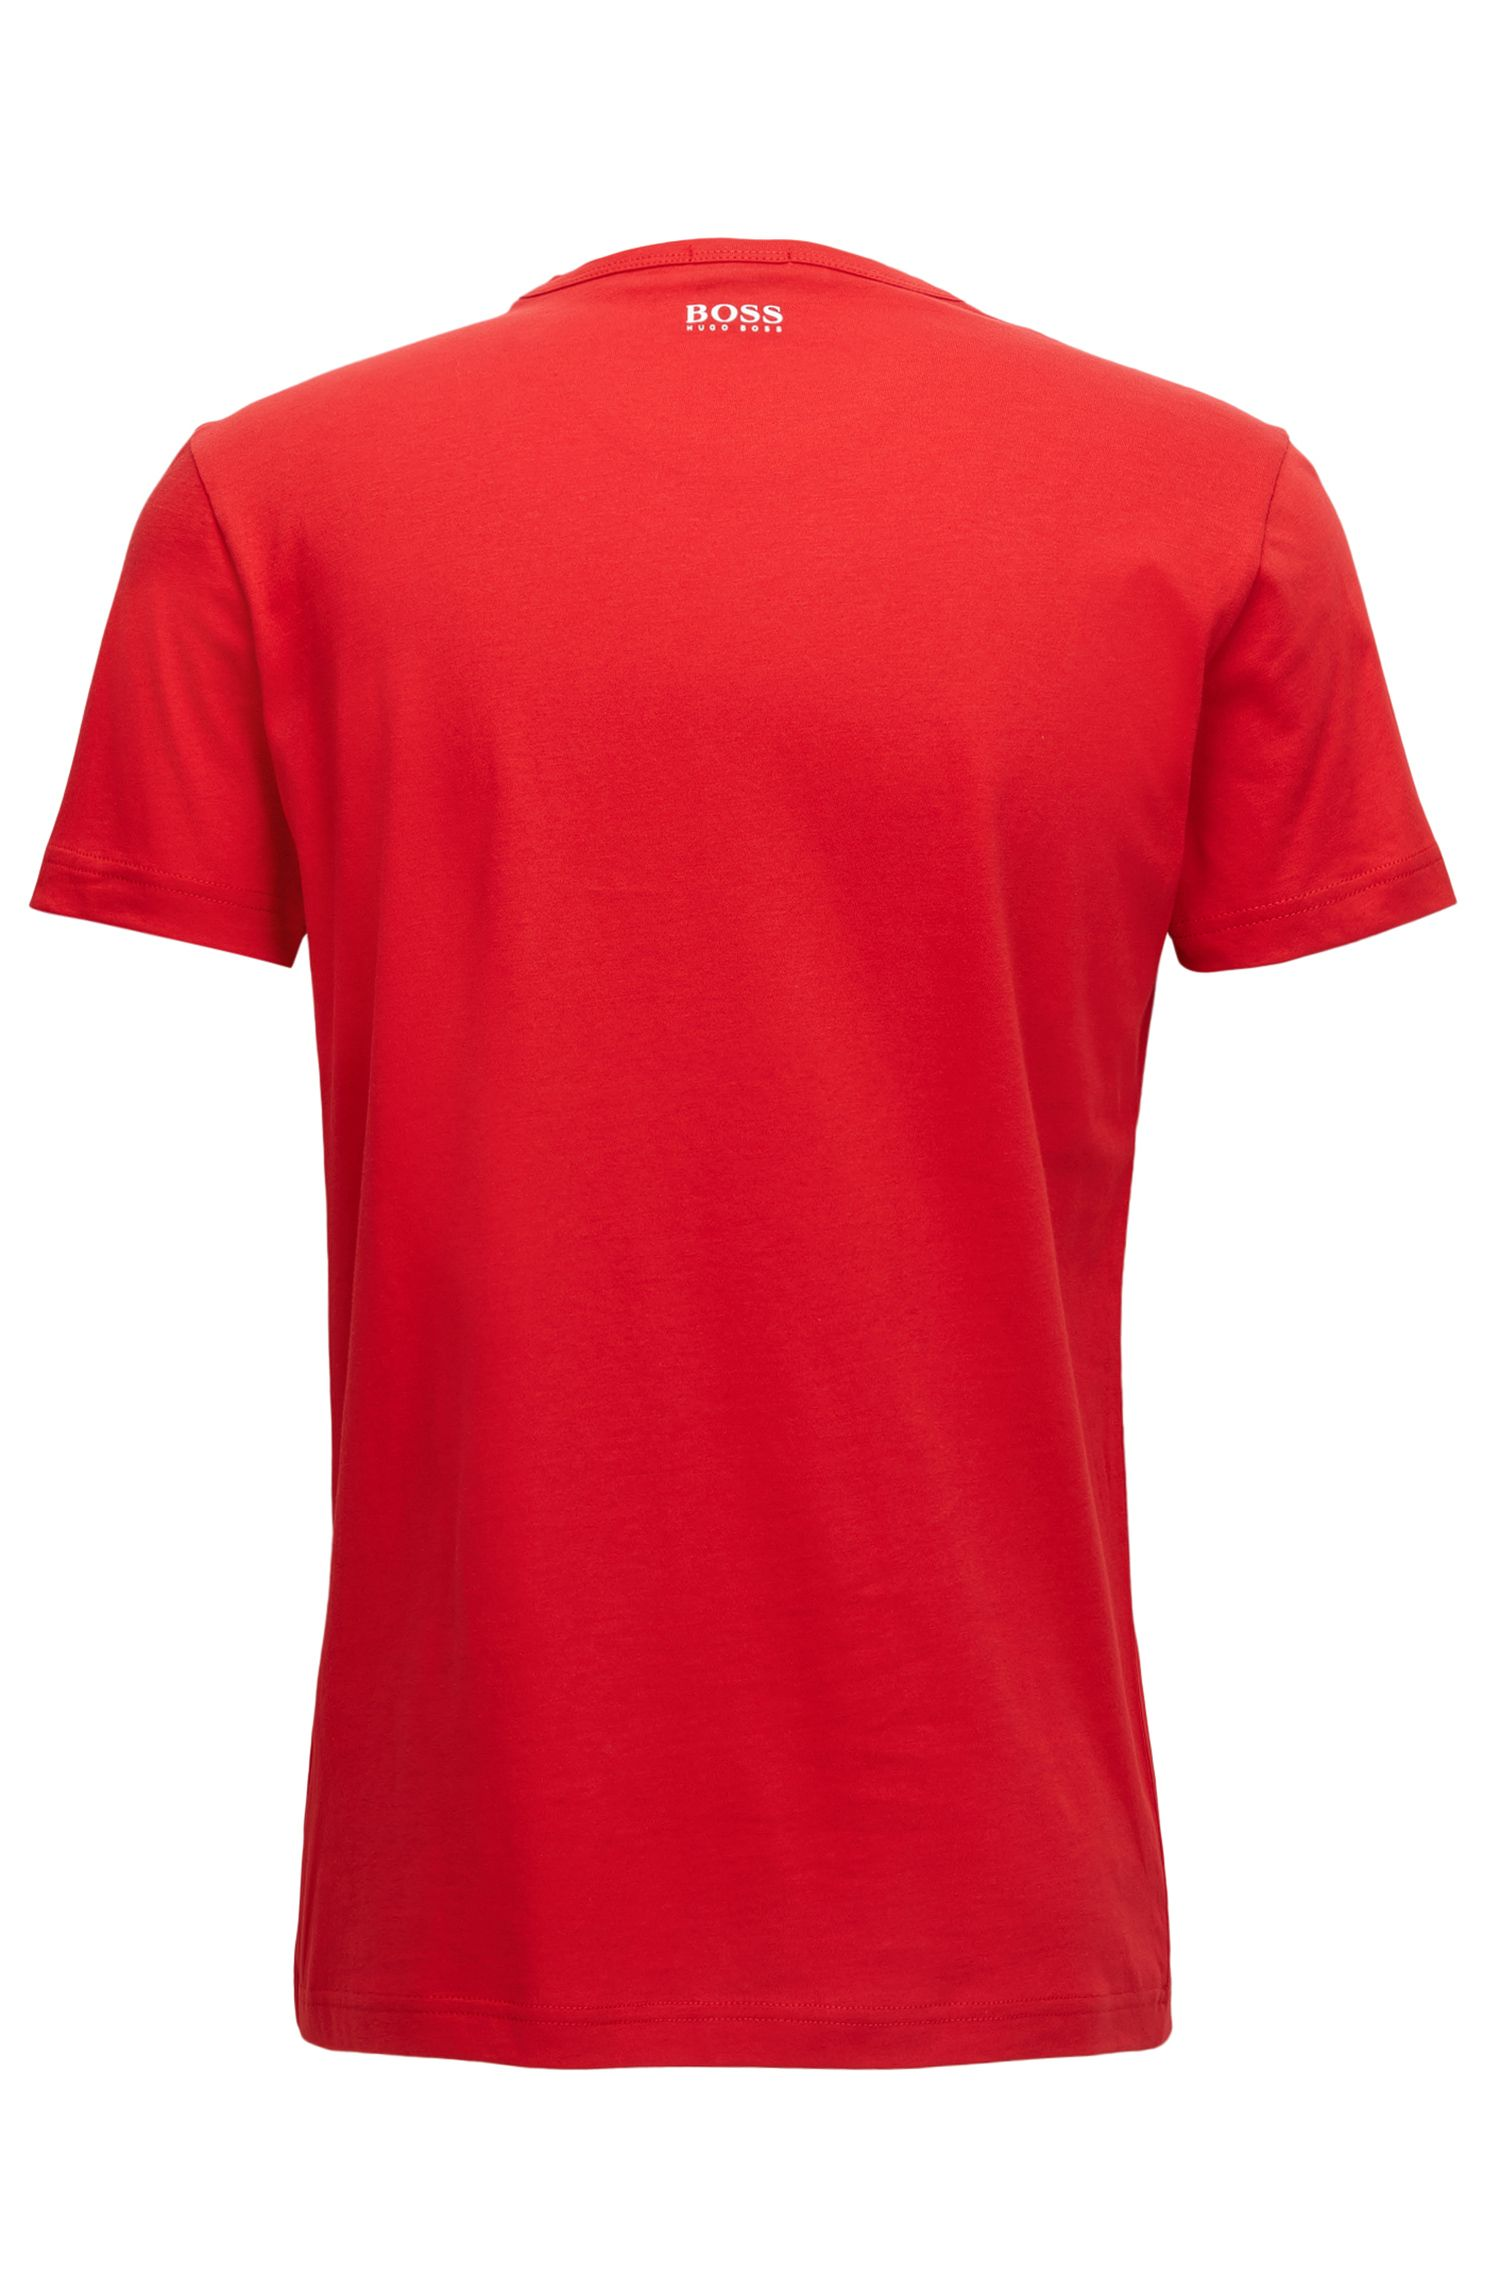 Cotton logo T-shirt in a regular fit